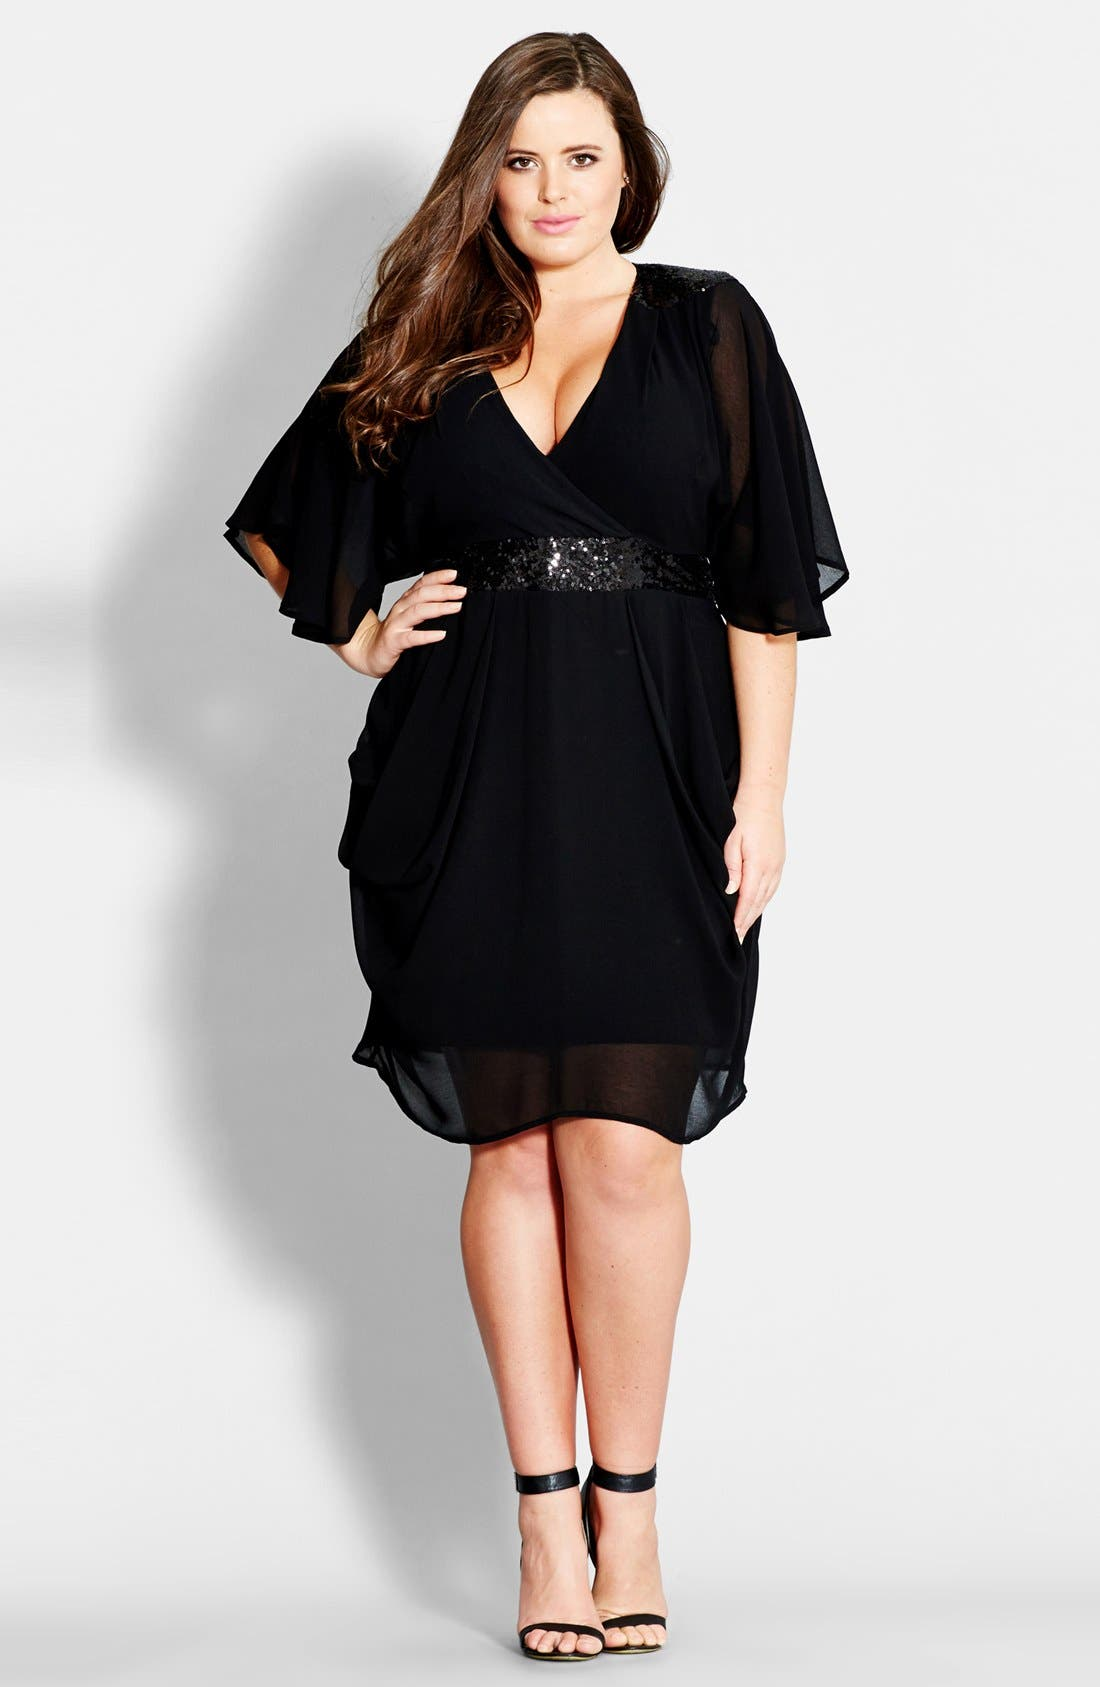 Looking for cheap plus size dresses